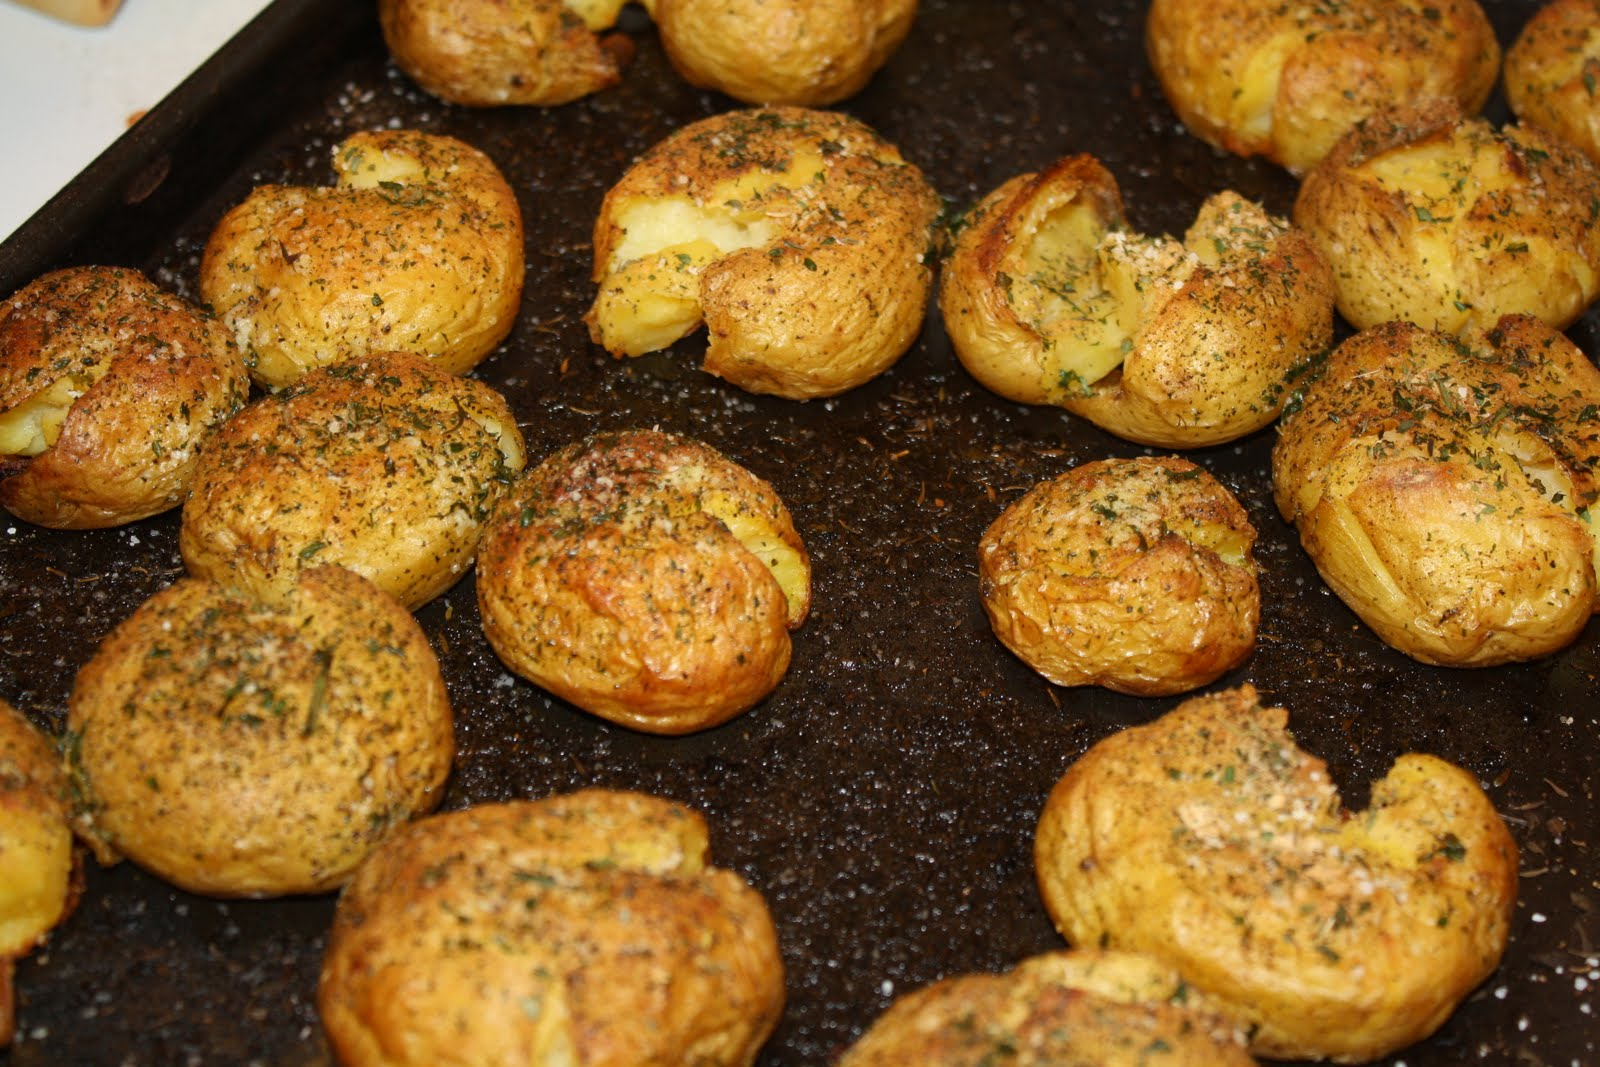 Seasoned with Love: Crispy Smashed Potatoes